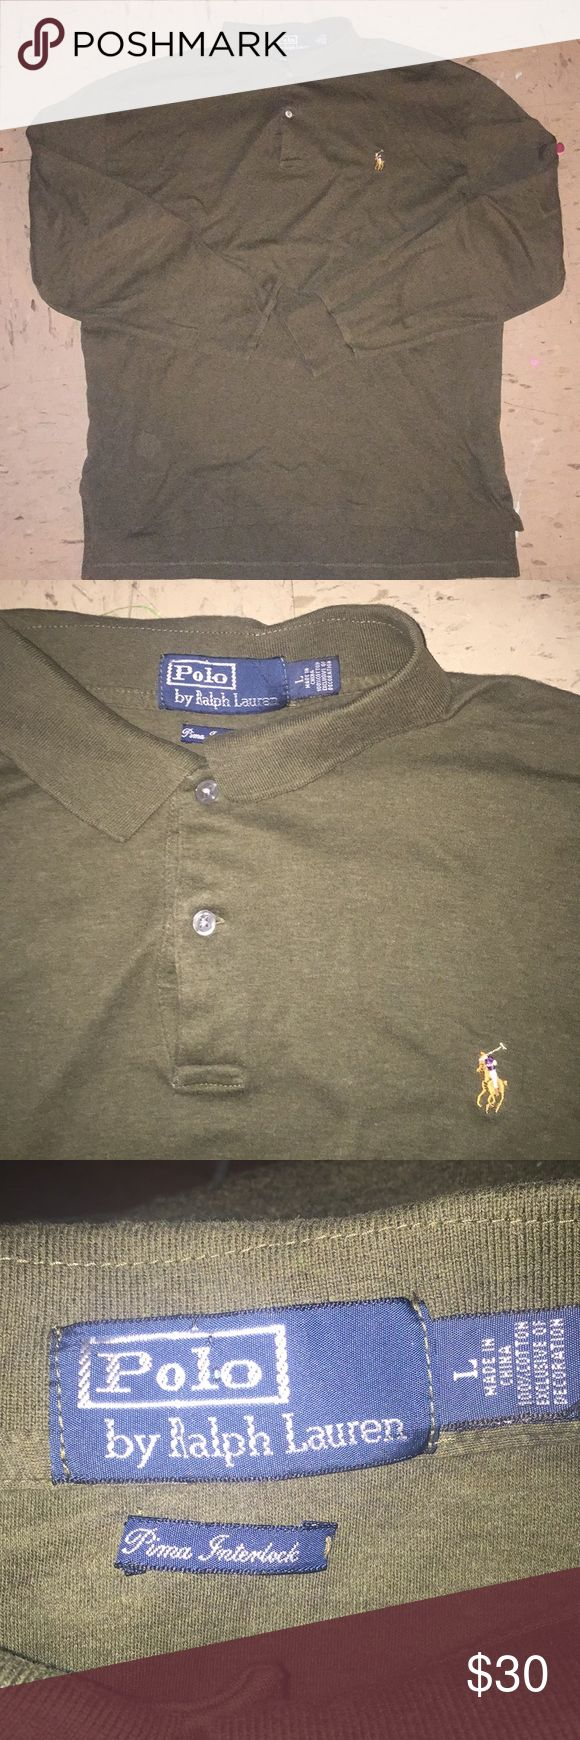 polo ralph lauren long sleeve polo shirt a prima interlock long sleeve polo shirt from polo ralph lauren. the color is olive green. the back of the collar has a strip of brown. long sleeve and looks great. gently used. buy now or best offer..... Polo by Ralph Lauren Shirts Polos